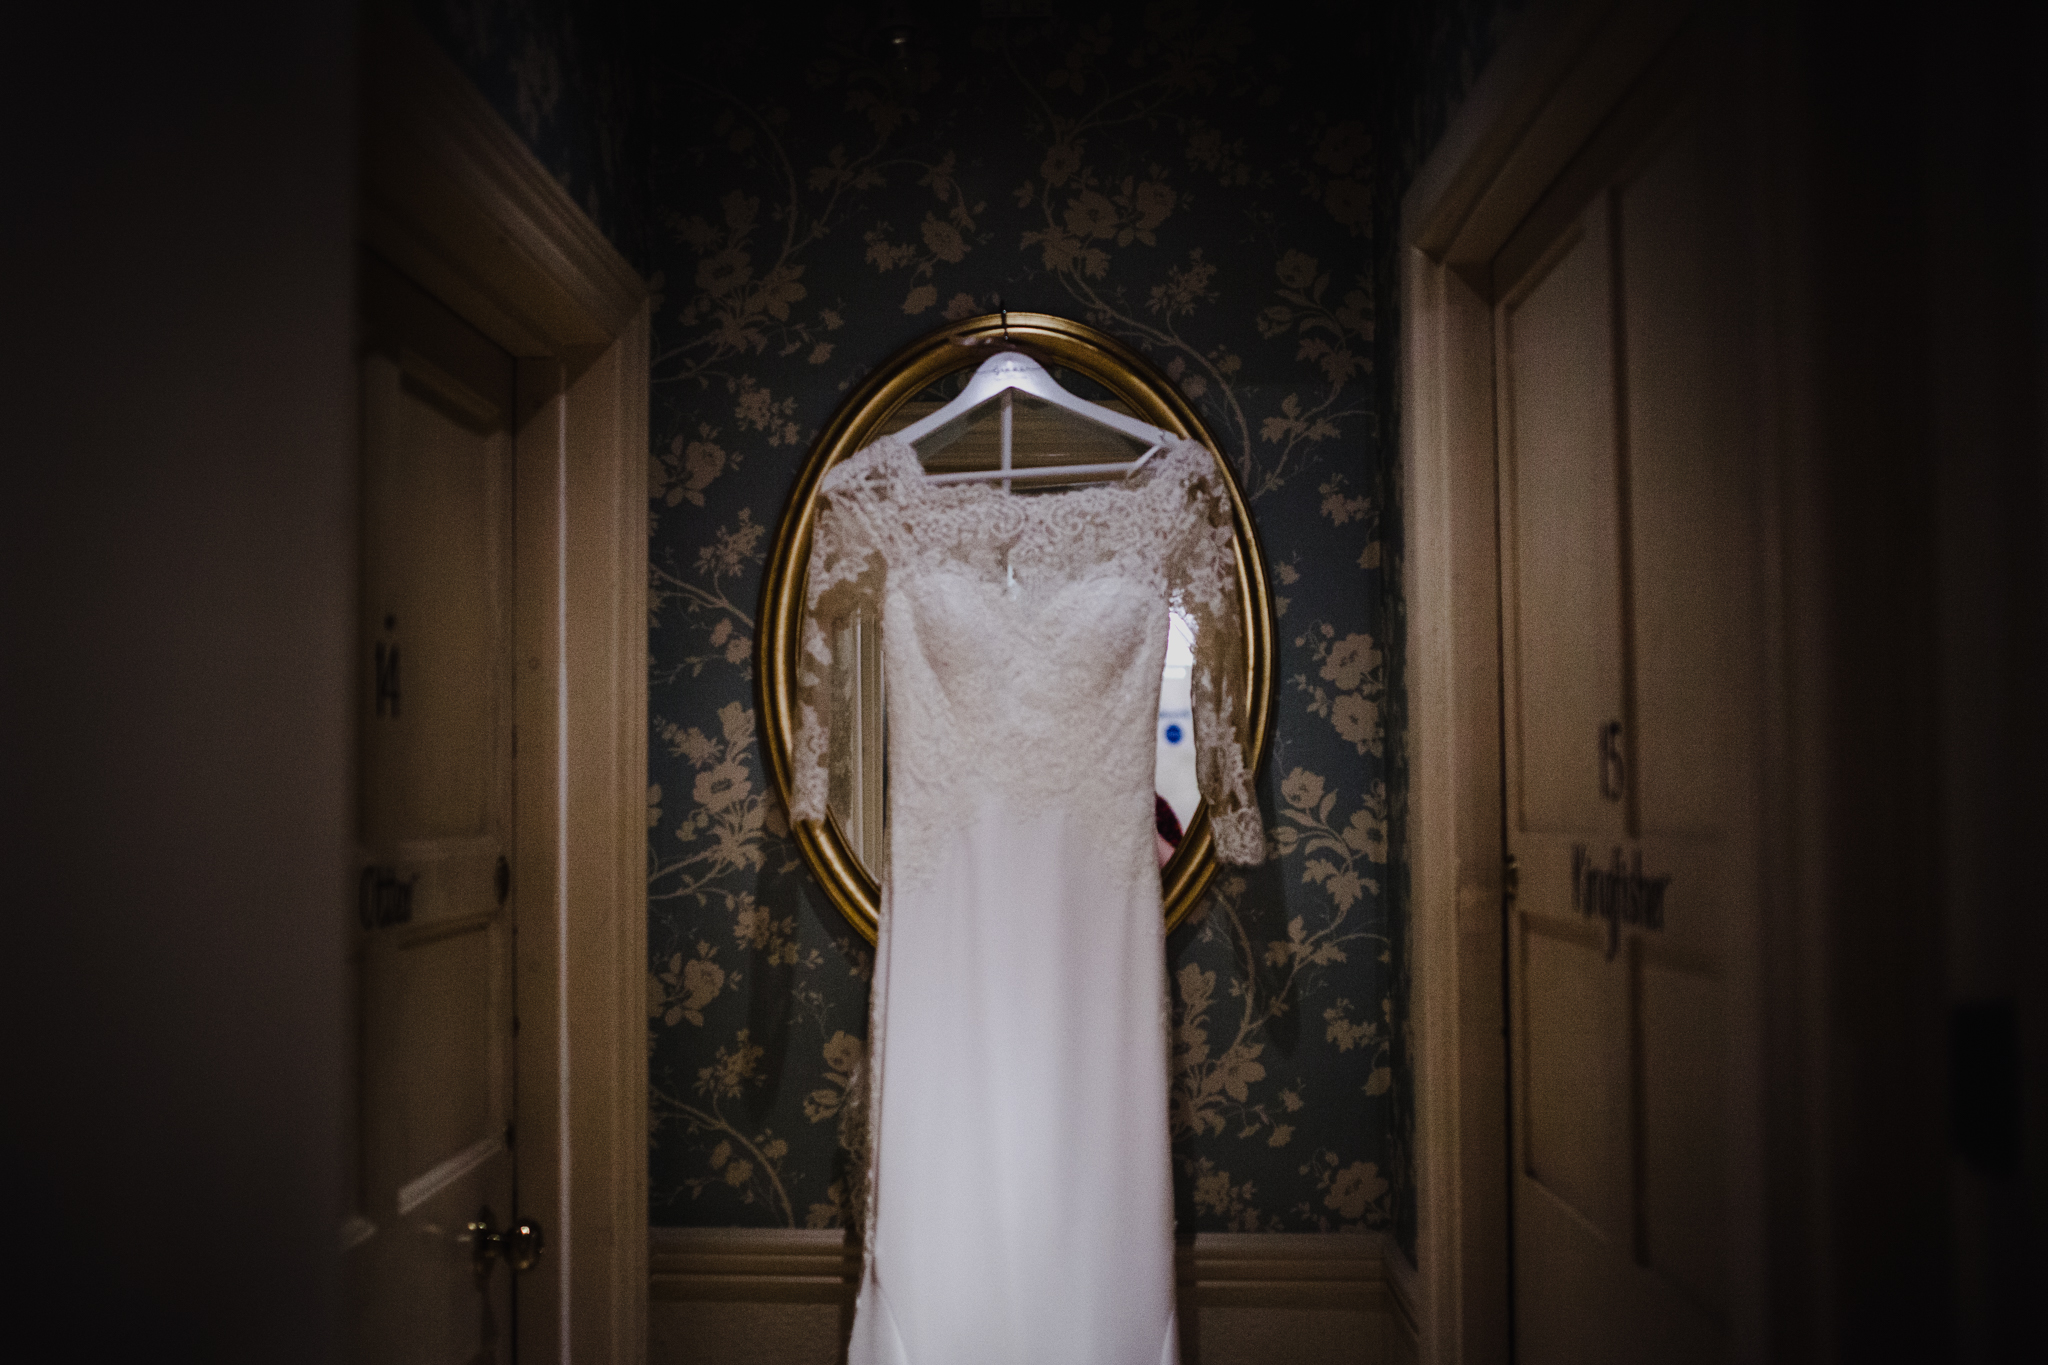 Wedding dress hanging on mirror with patterned wallpaper